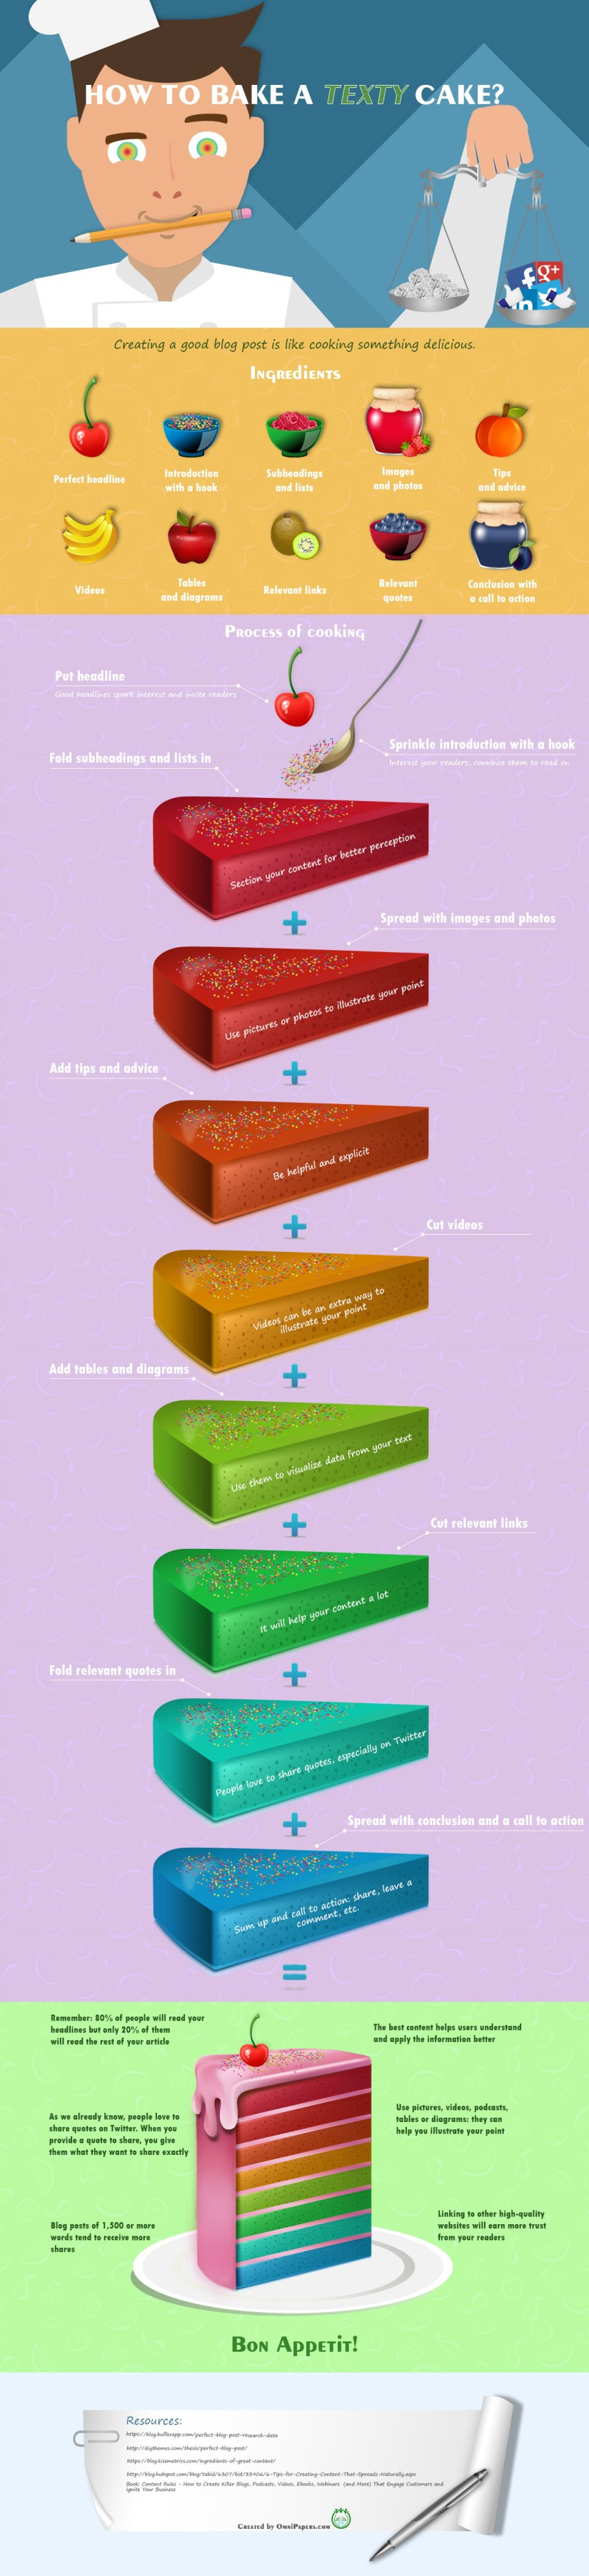 how-to-bake-a-texty-cake-infographic